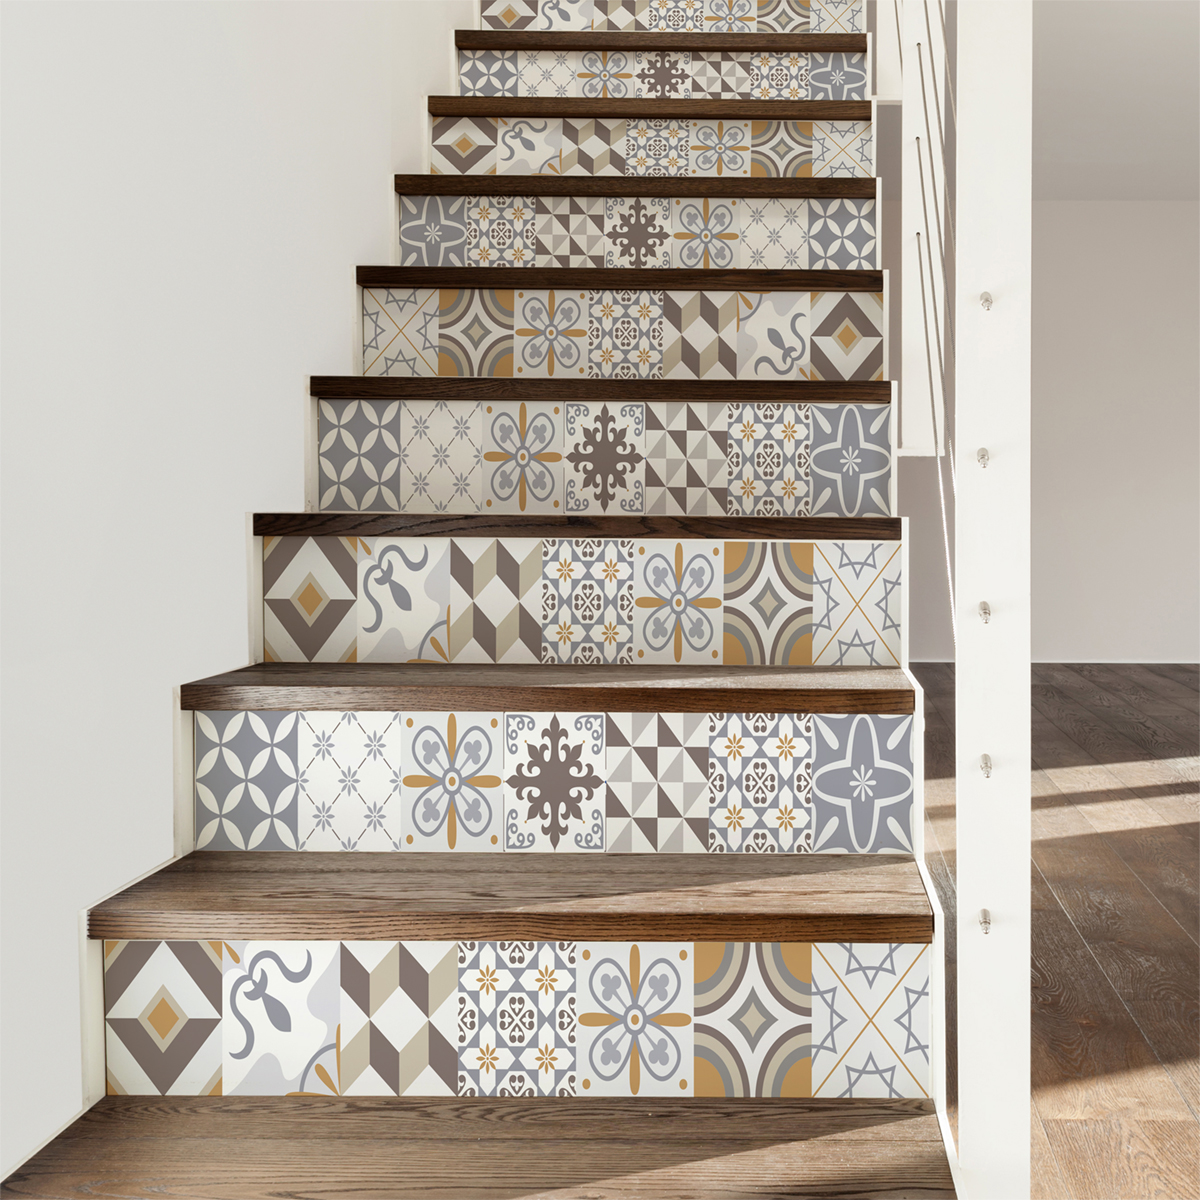 Carrelage Escalier Stickers Escalier Carrelages Ornements Sobres X 2 Ambiance